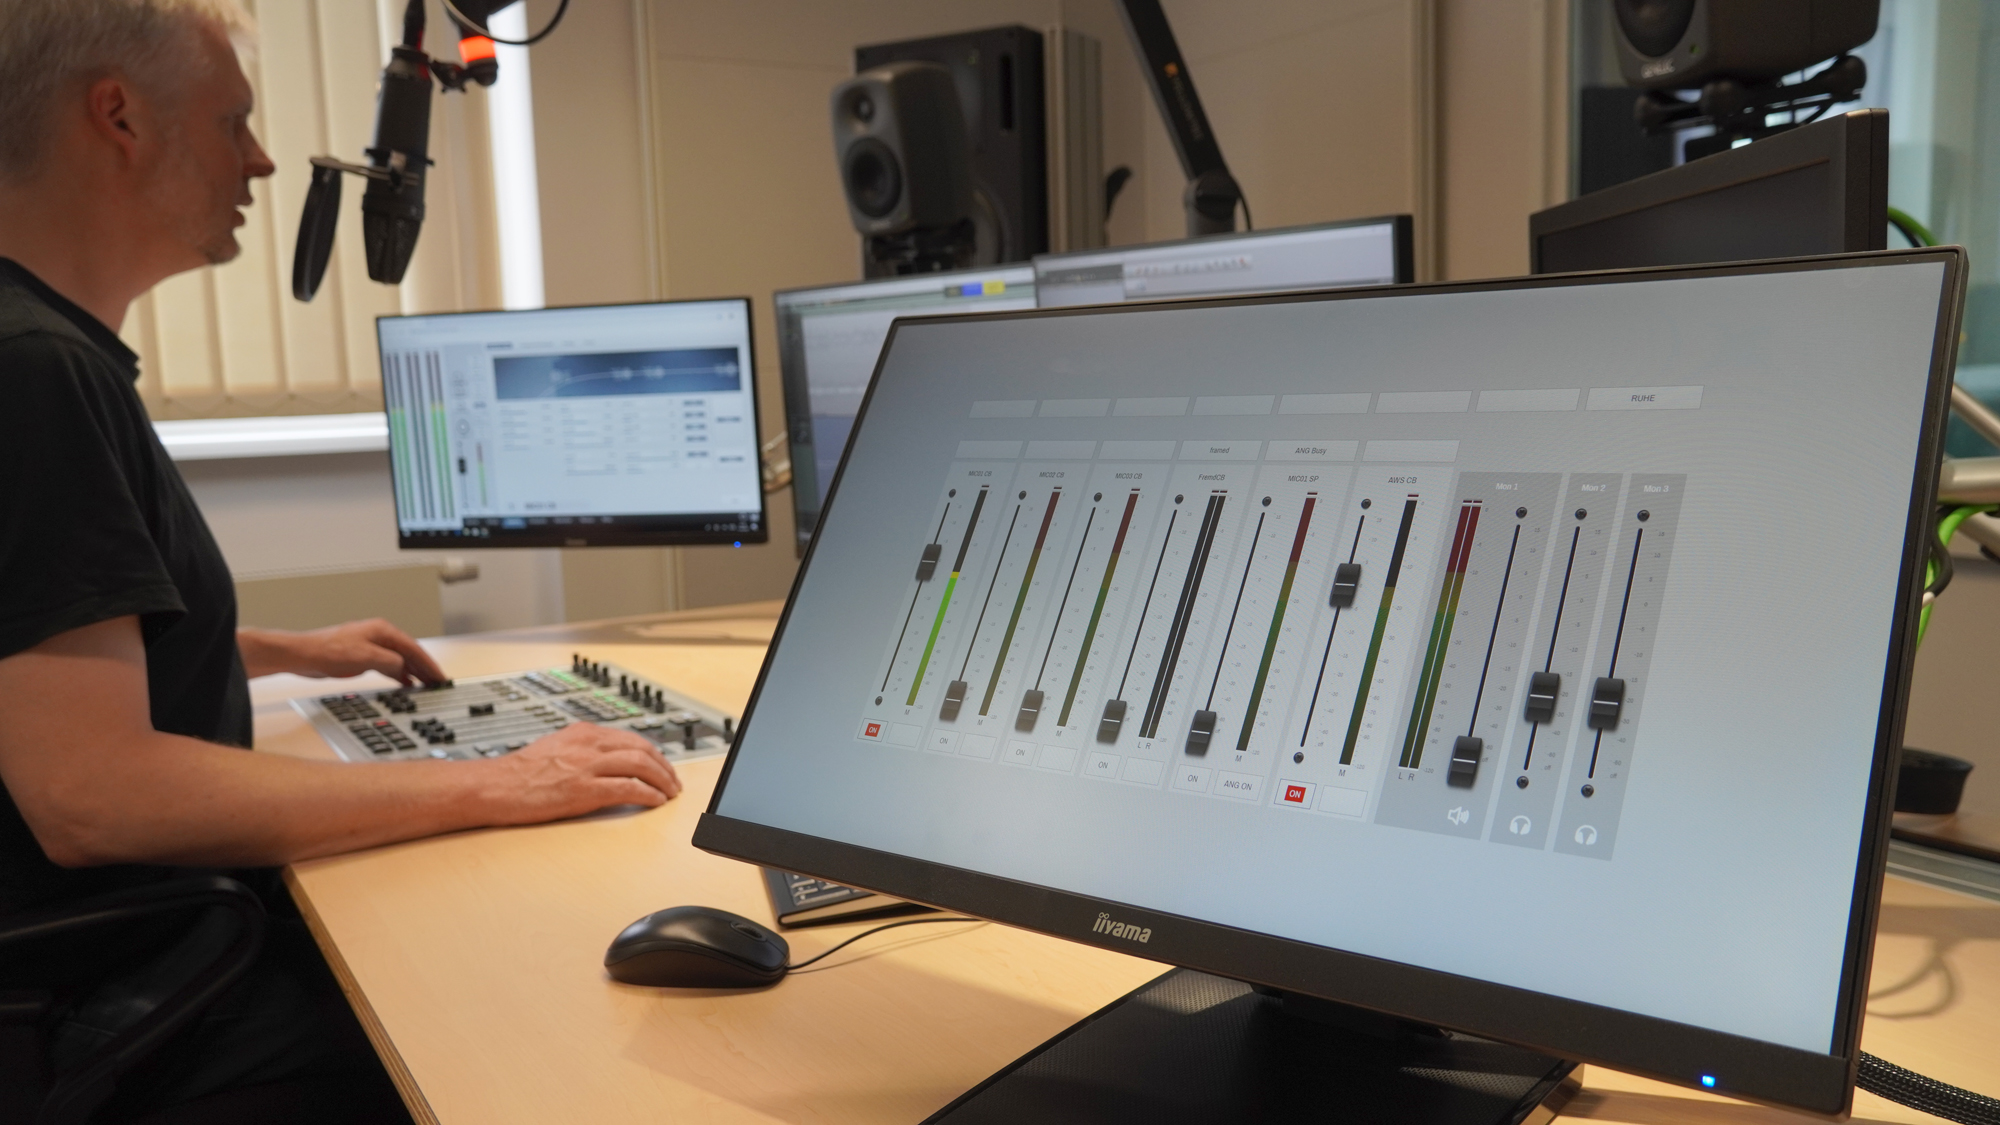 2020 08 StageTec ON AIR flex by Stage Tec for self-op in WDR regional studios